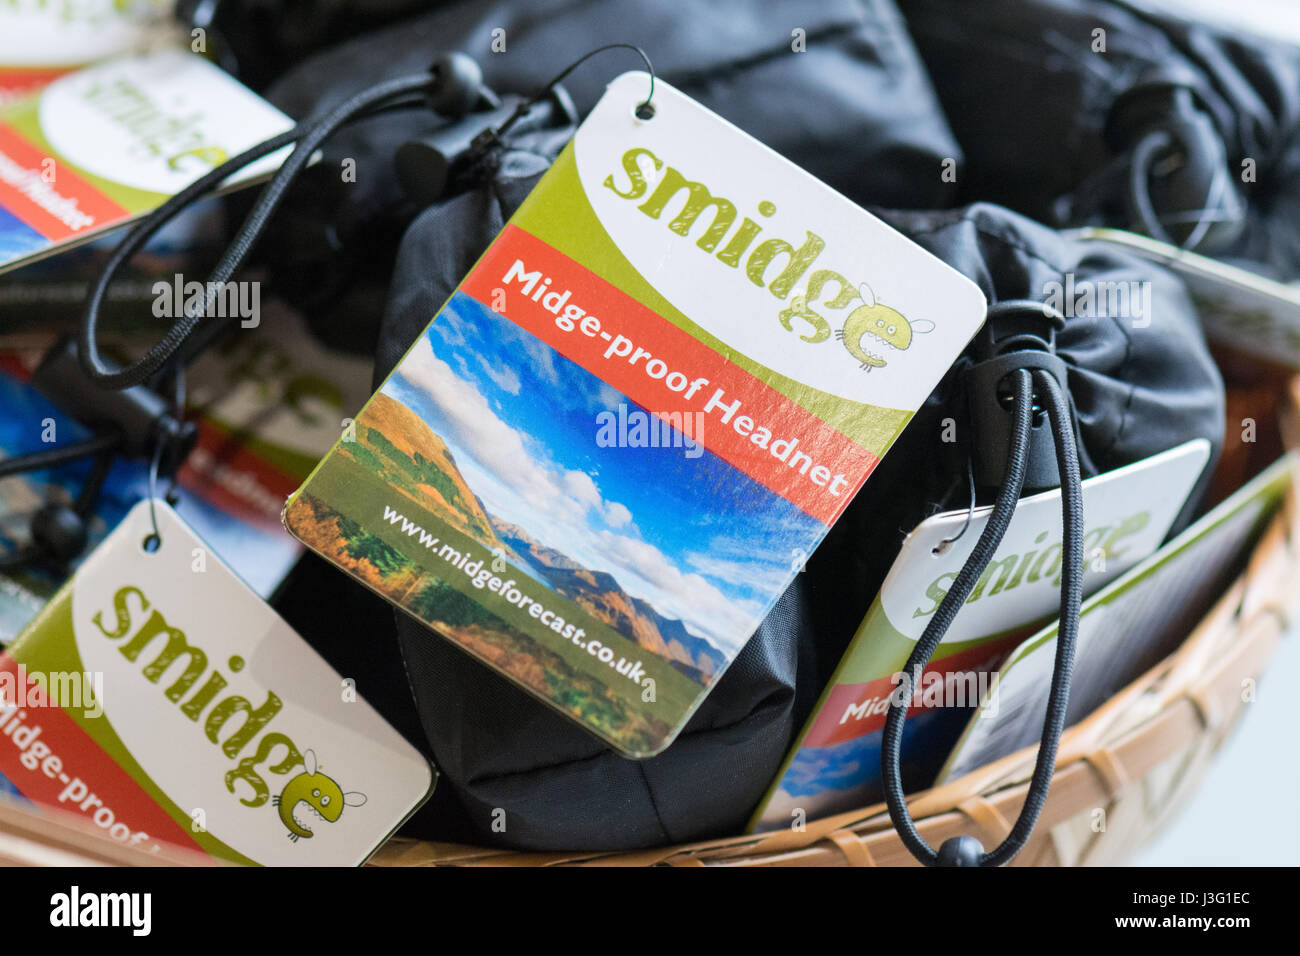 Midge net - Midge proof headnet produced by smidge - Stock Image